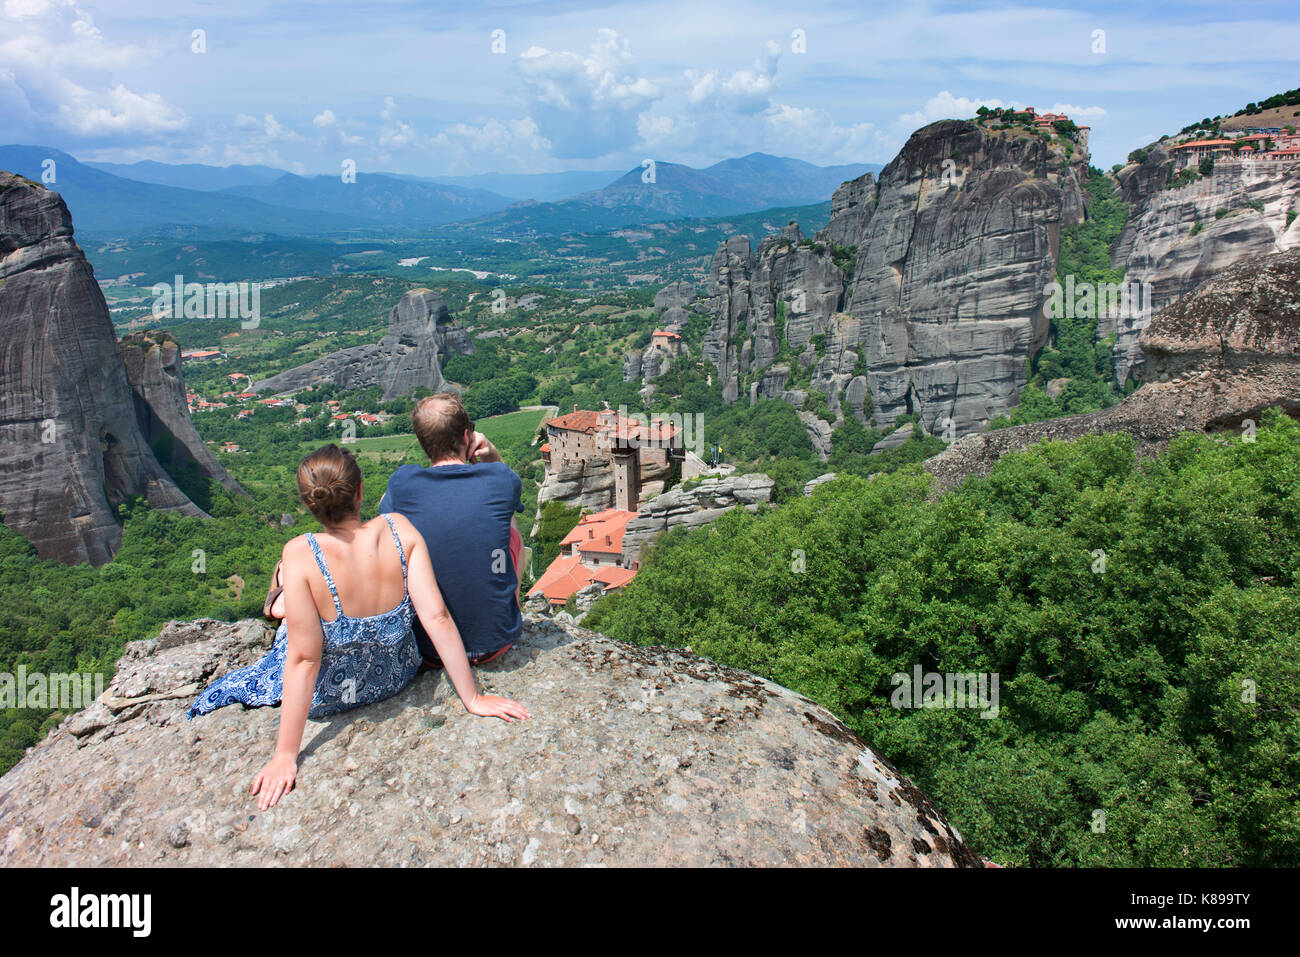 A young couple admire the view of some of the monasteries at Meteora. - Stock Image